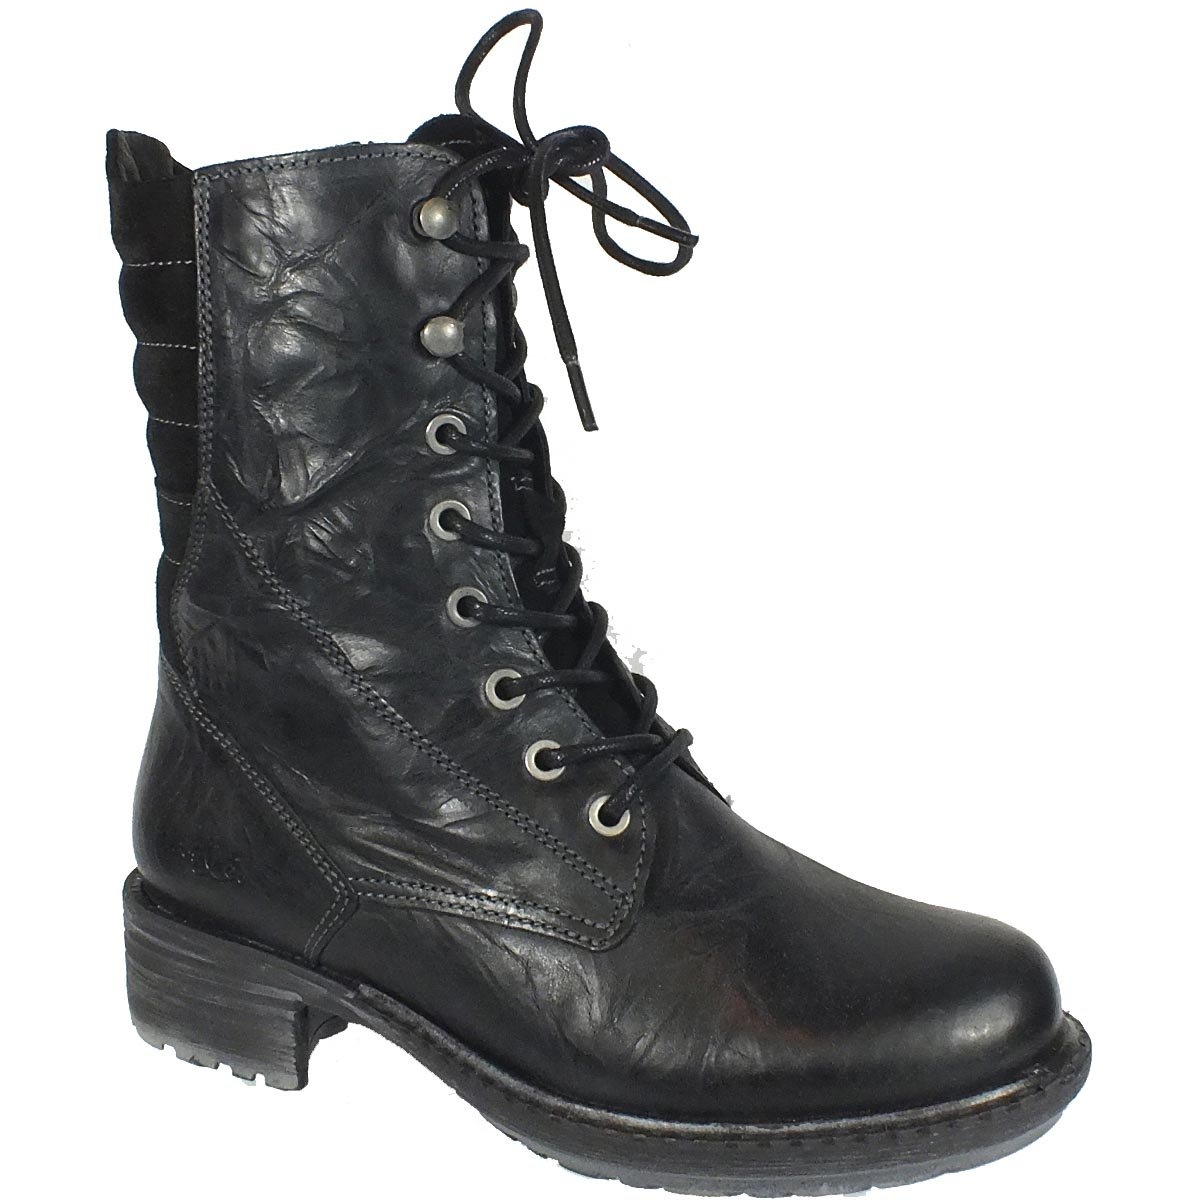 252cd0901ad2a Bos. & Co. Women's Salem Chunky Stacked Heel Combat Motorcycle Boot